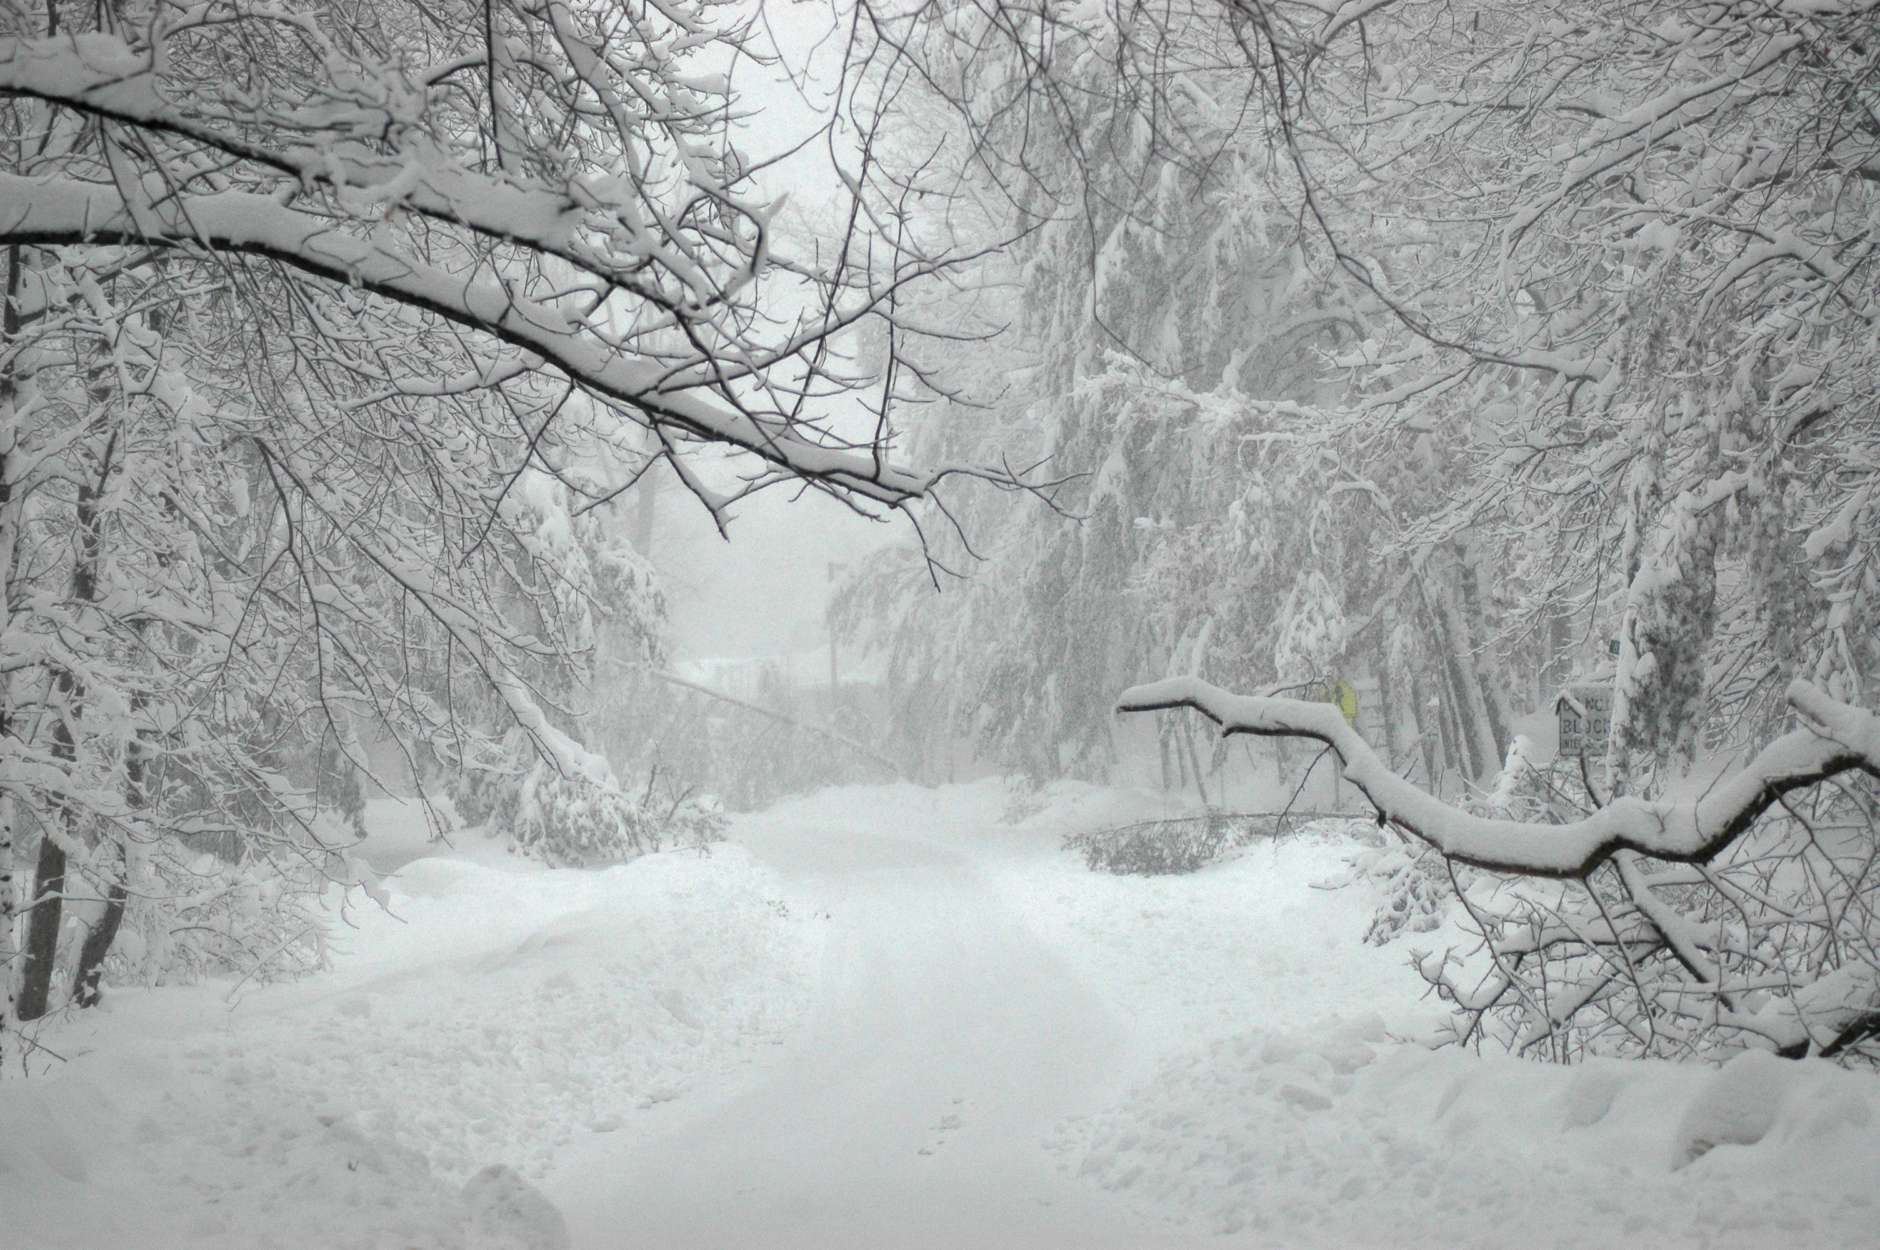 The heavy, wet snow that fell during the Snowmageddon storm in February 2010 downed numerous trees in Fairfax County, prolonging plowing efforts.  (WTOP/Dave Dildine)